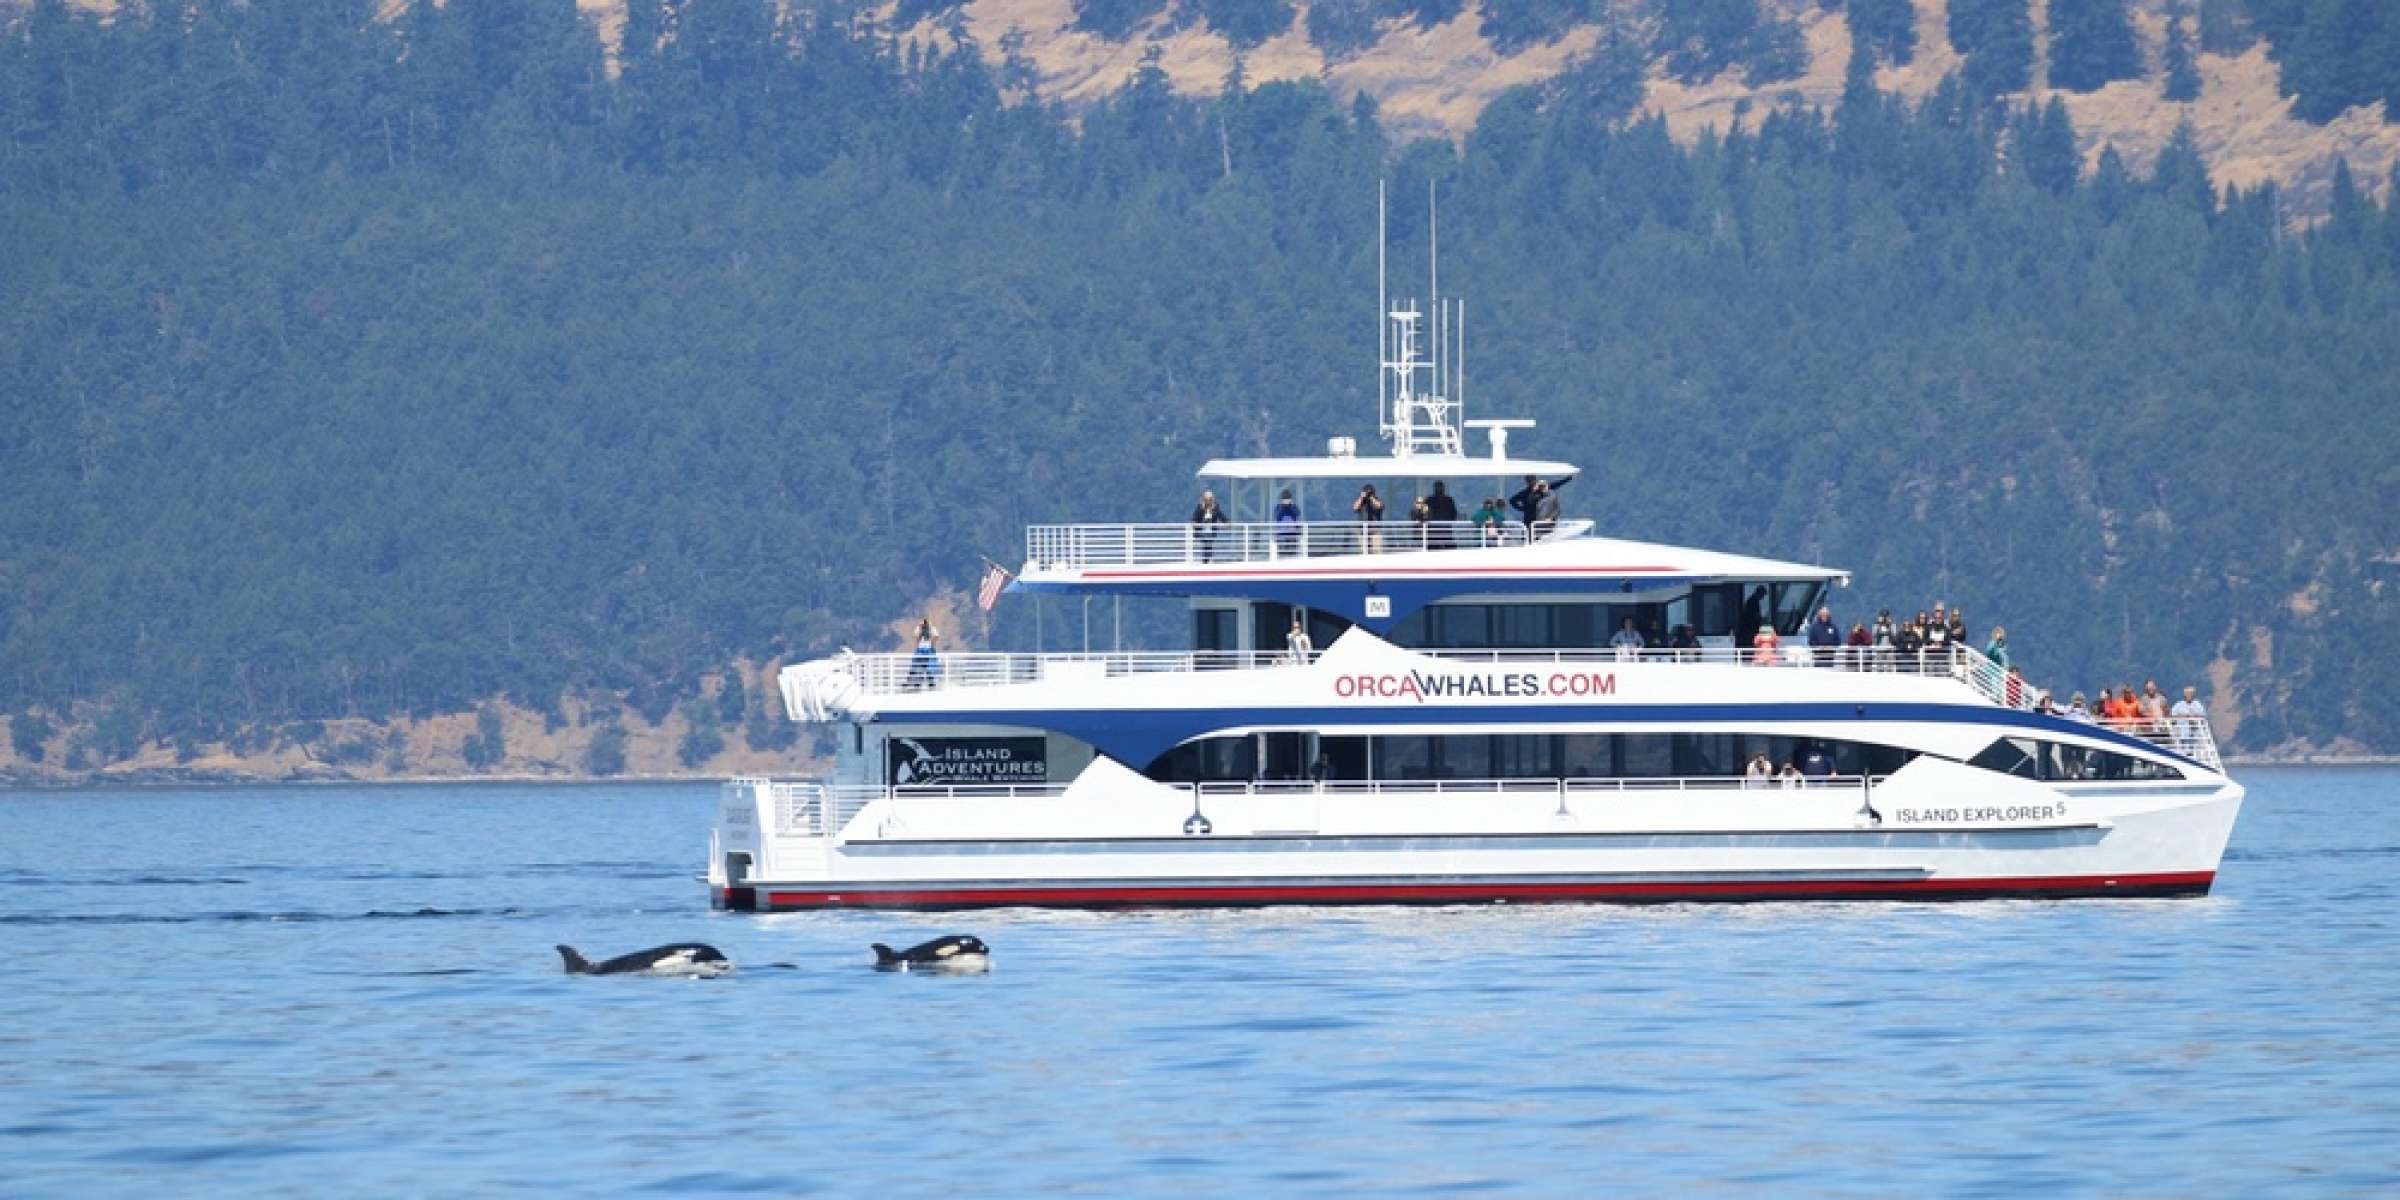 Island Adventures Whale Watching Ie5 1